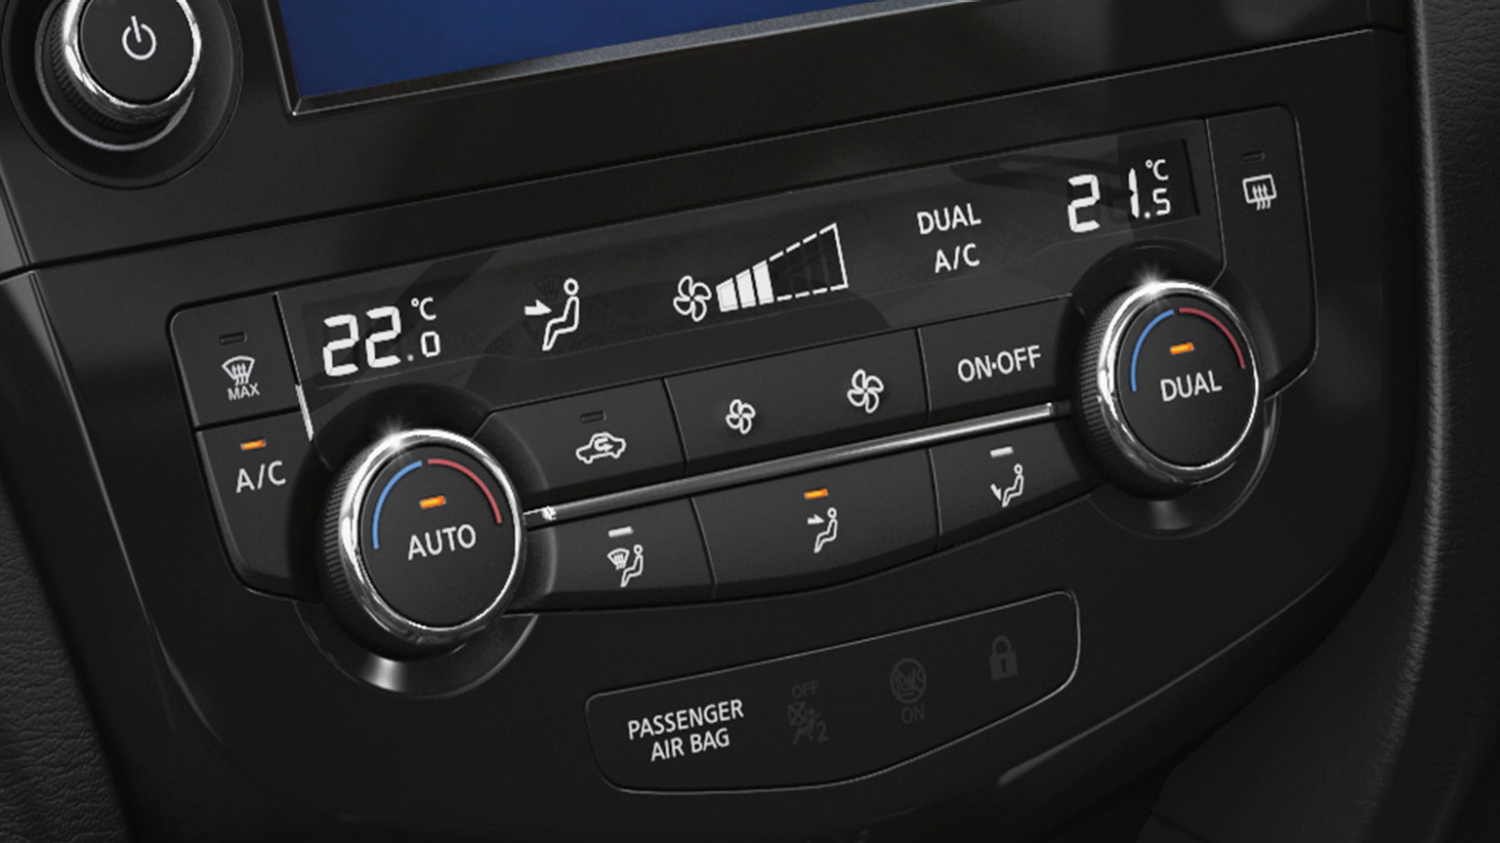 7 seater & 4x4 car features - Temperature controls display | Nissan X-Trail